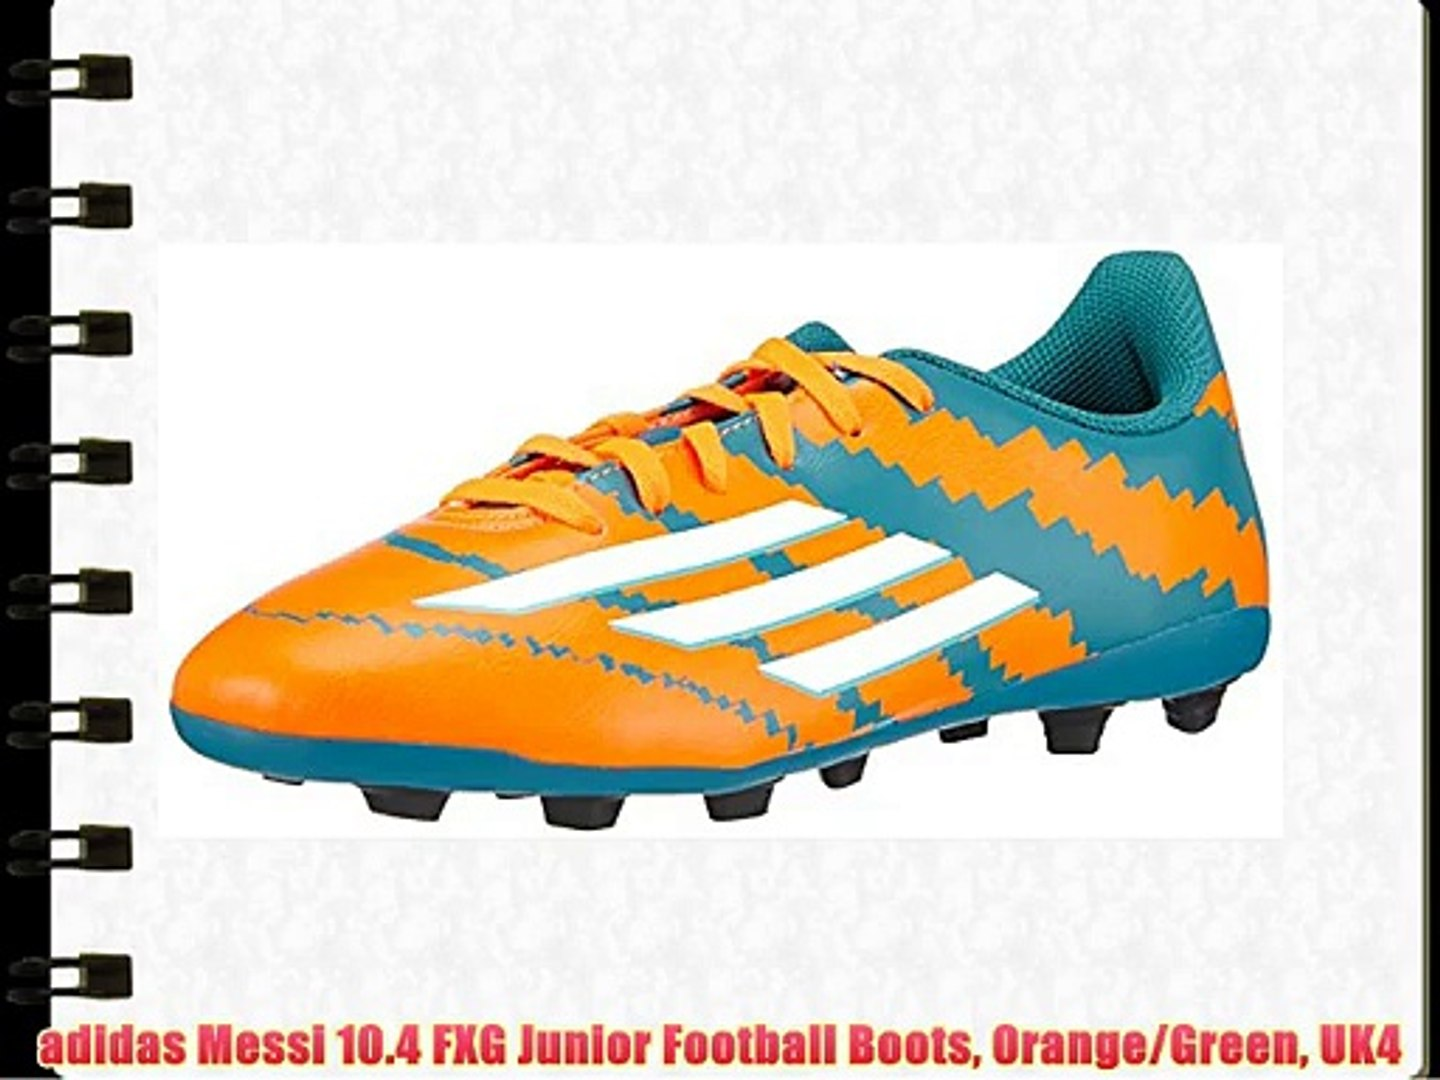 New Messi Football Boots: adidas Messi15.1 Unboxing